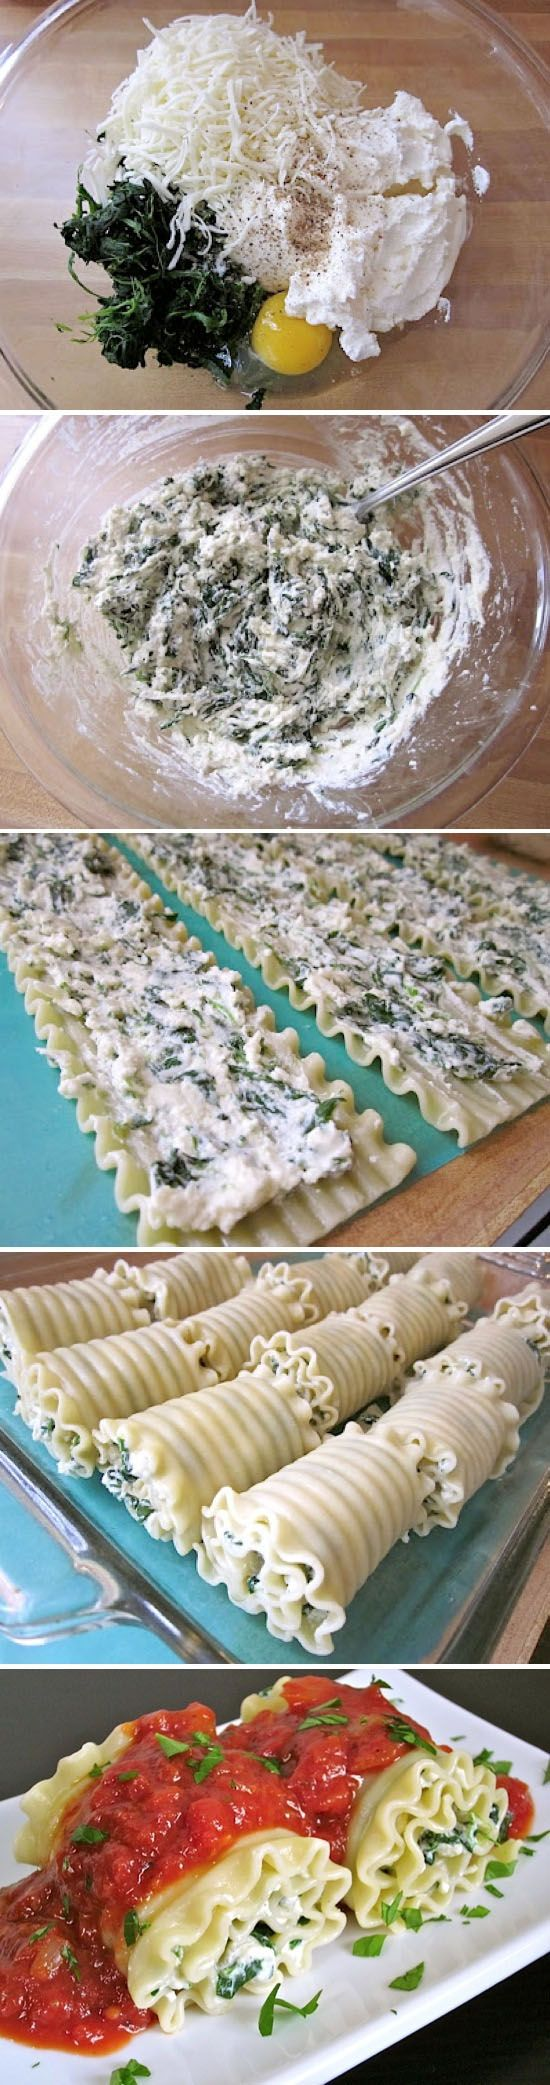 The filling: Parmesan (or mozzarella or other cheese grated) + egg + spinach + cream cheese (I would use ricotta or processed frescal). Makes a briefcase, fills the already cooked lasagna sheets, leads quickly to the oven just to melt the cheese and served with a freshly baked tomato sauce